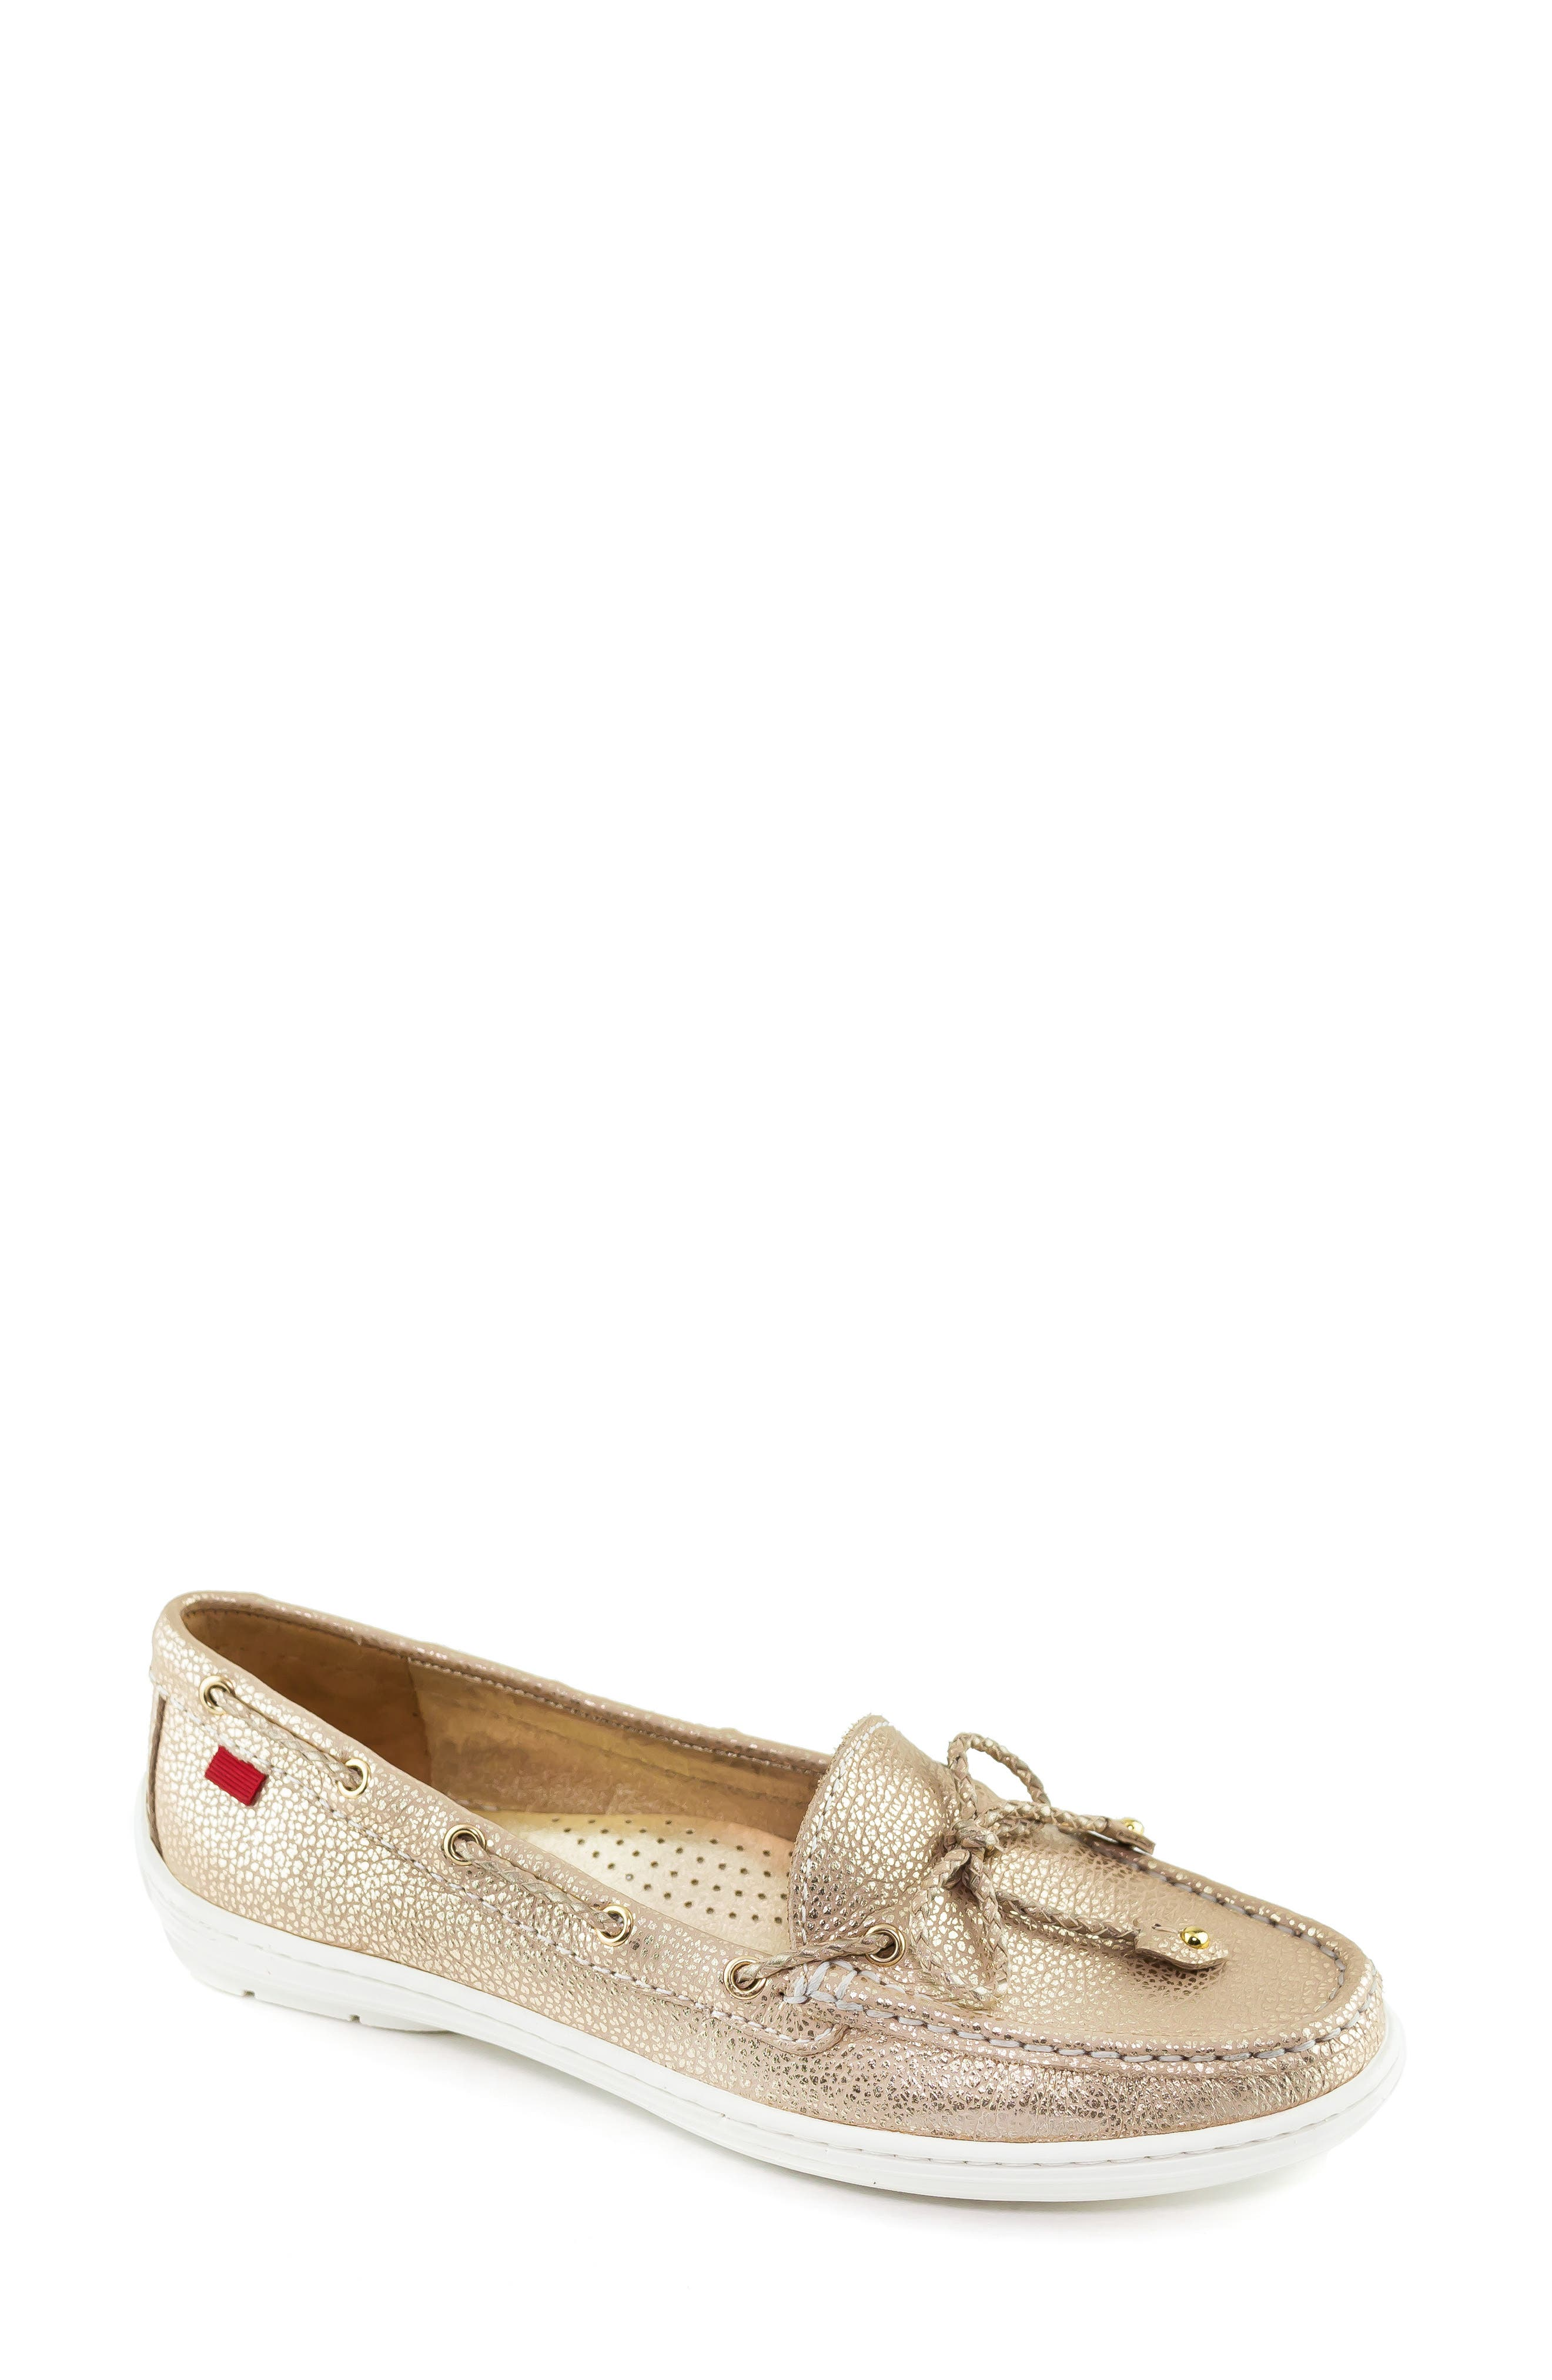 MARC JOSEPH NEW YORK, Pacific Loafer, Main thumbnail 1, color, GOLD LEATHER